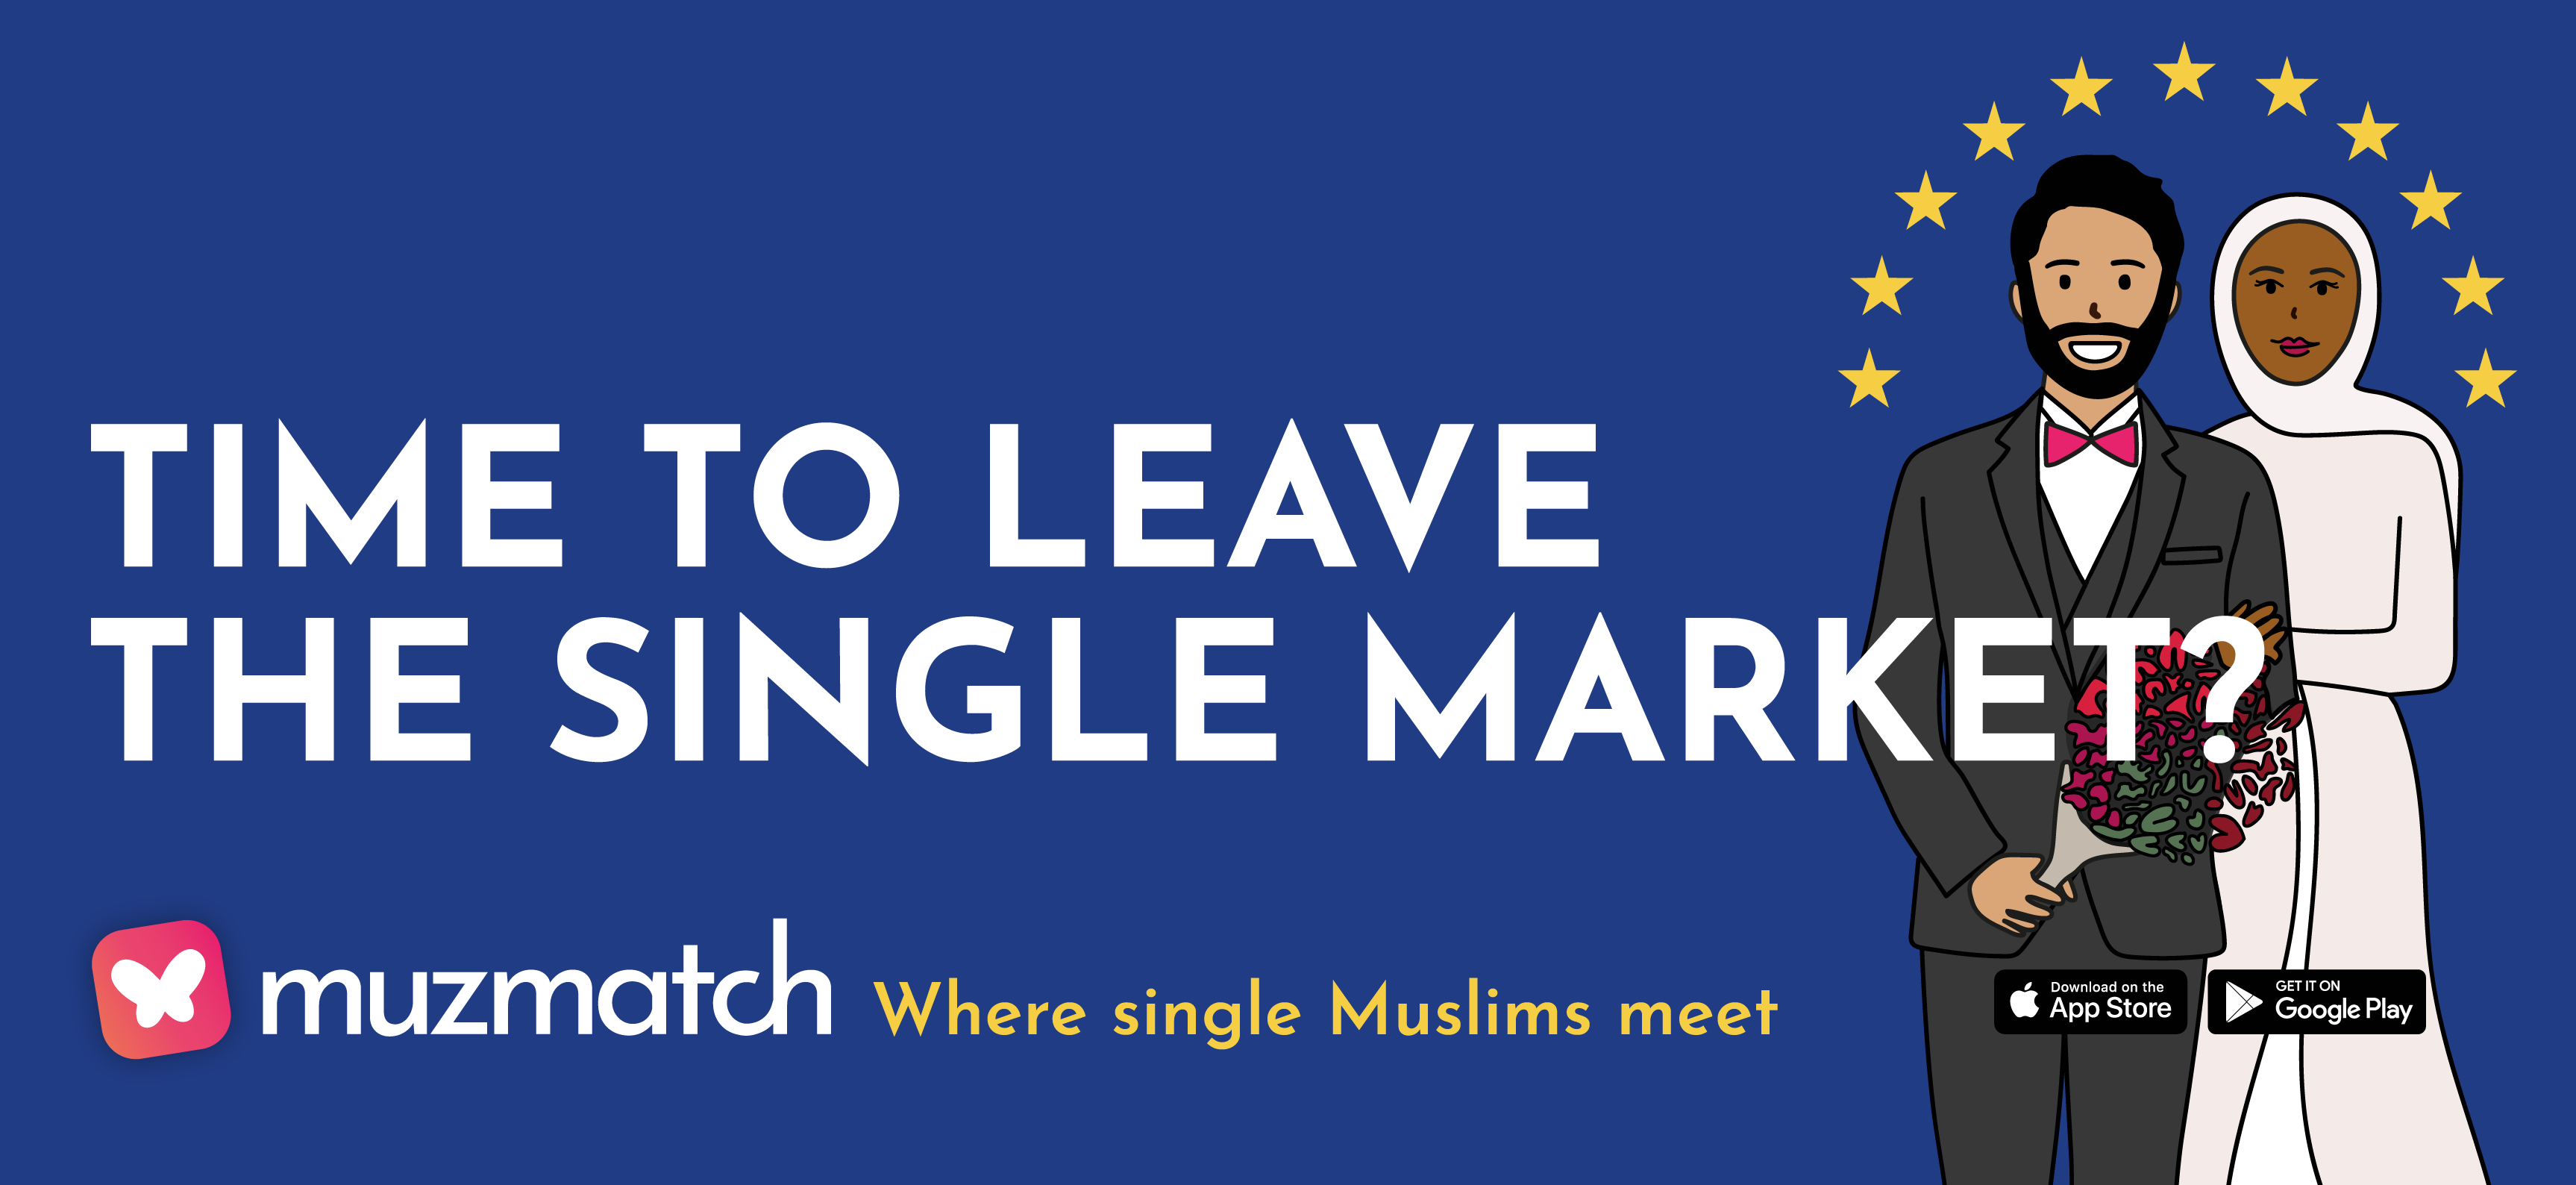 muzmatch Launches Brexit-Themed London Underground Ads